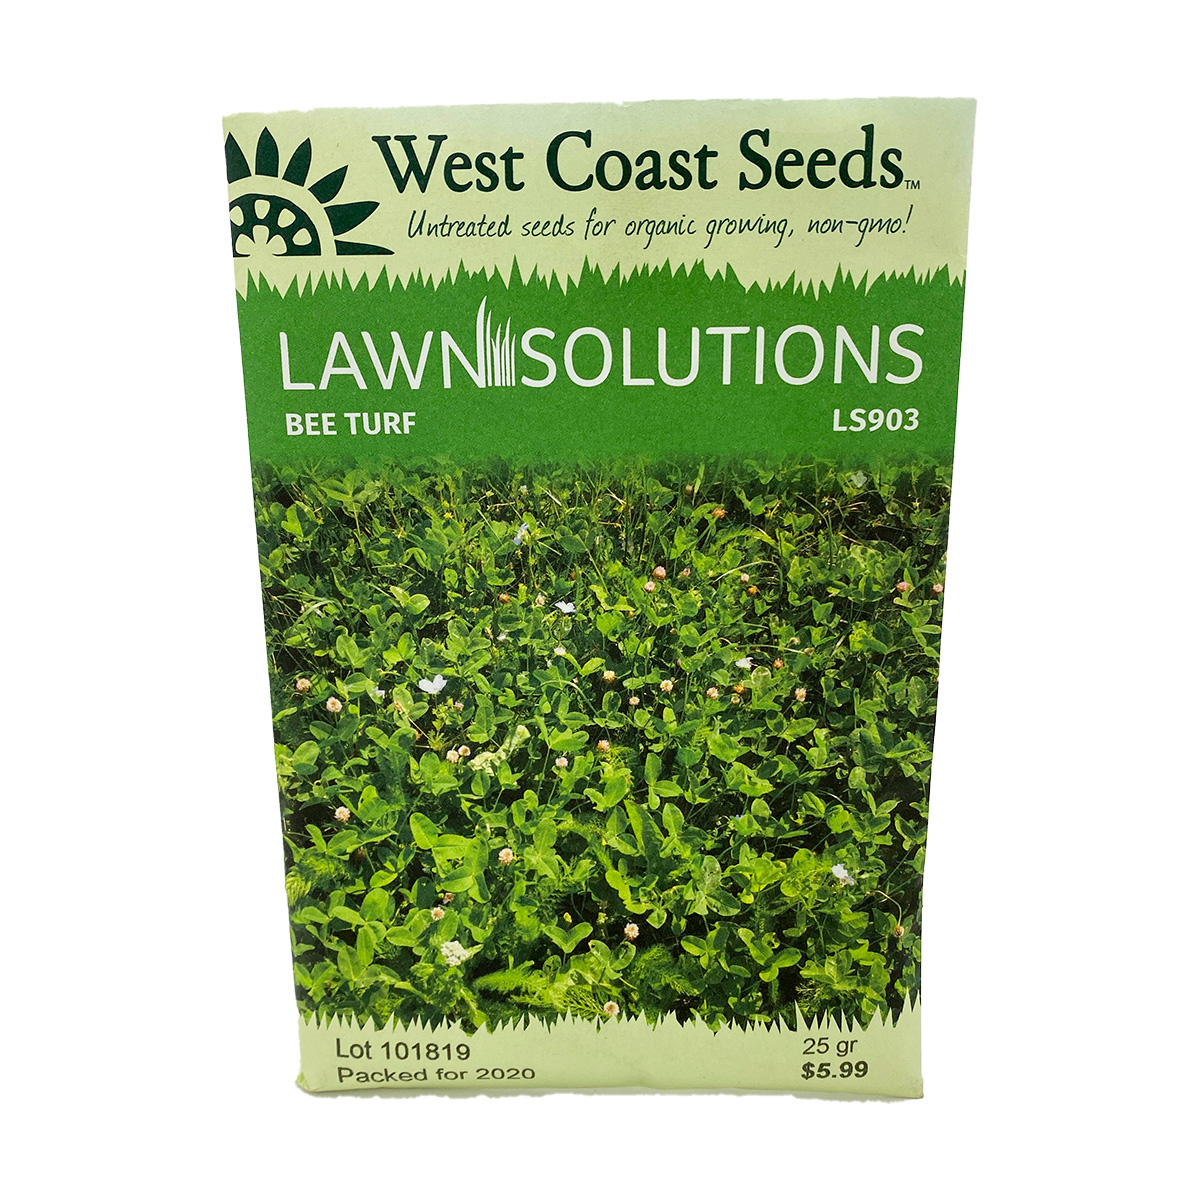 Lawn Solutions Bee Turf 25g